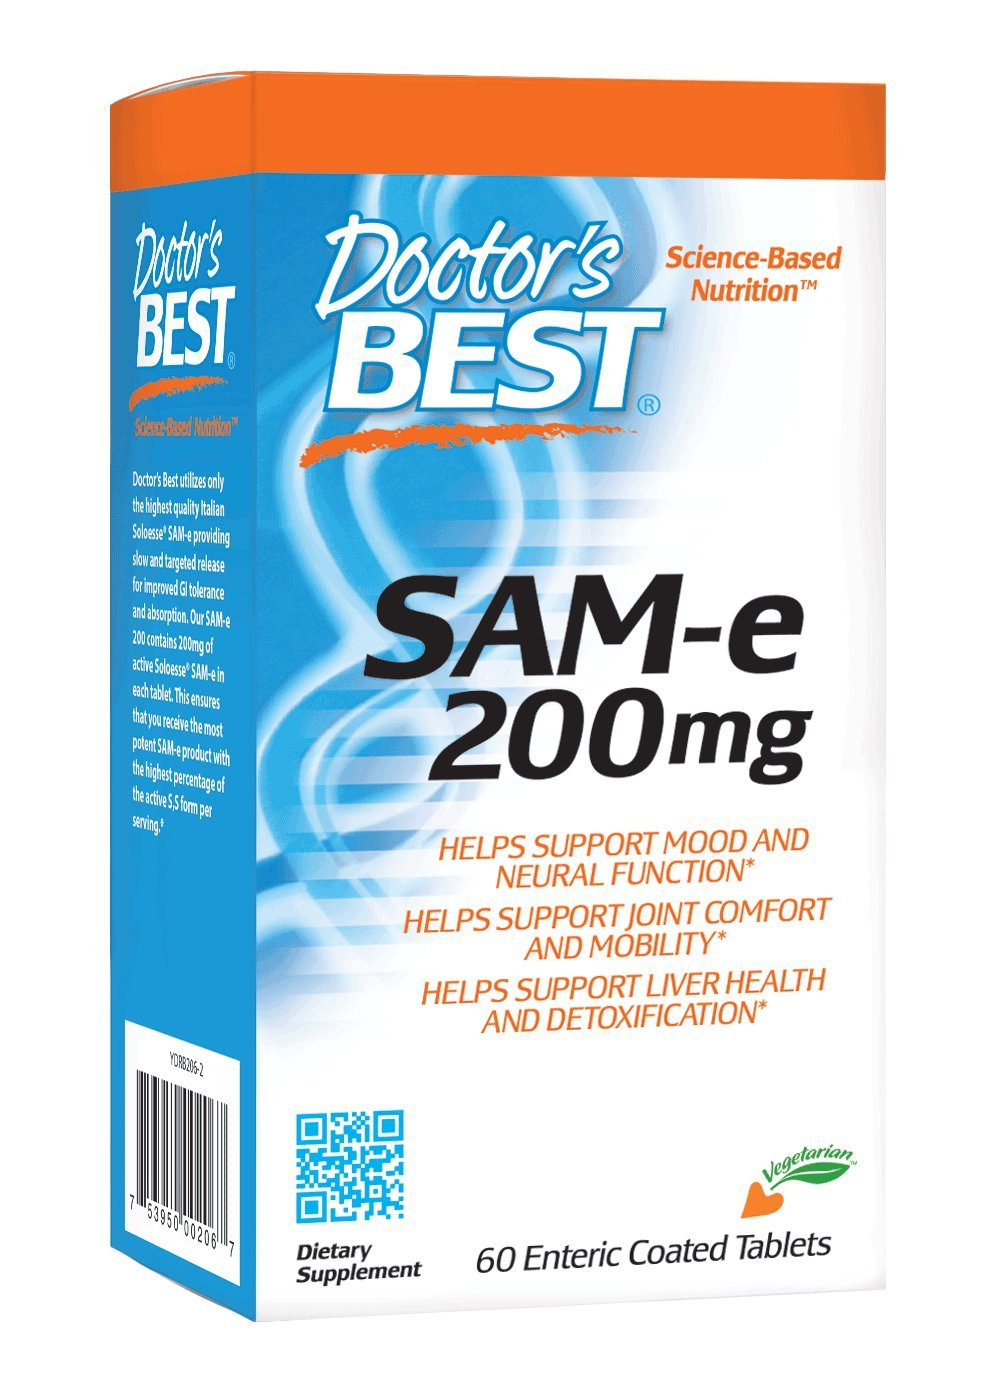 Doctor's Best SAM-e 200 mg, Vegan, Gluten Free, Soy Free, Mood & Joint Support, 60 Enteric Coated Tablets by Doctor's Best